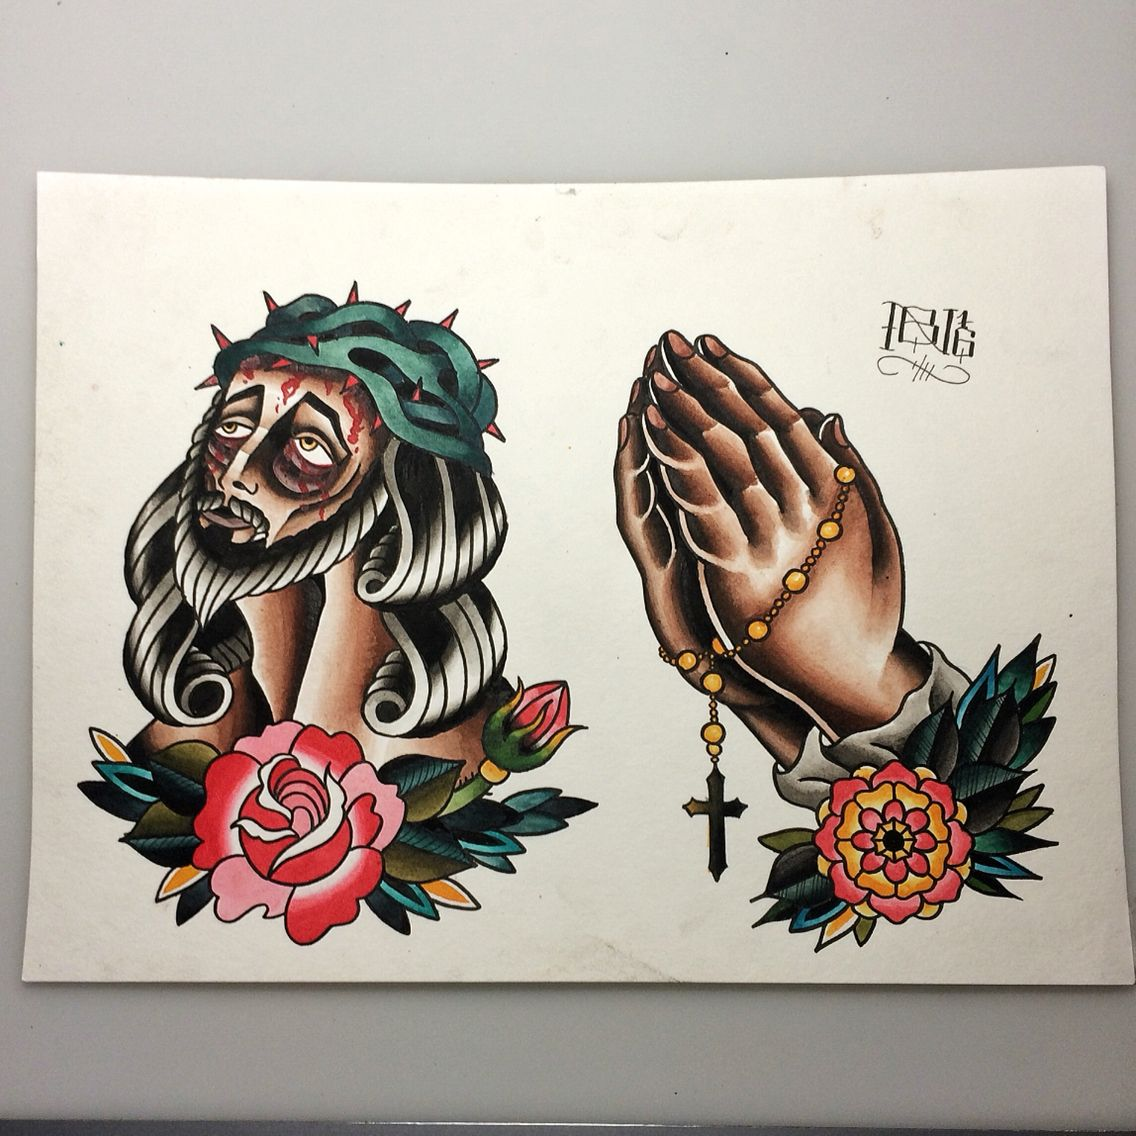 Traditional Praying Hands Tattoo Black And Gray: For The Love Of God. Make. Him. Stop. Make Them Suffer